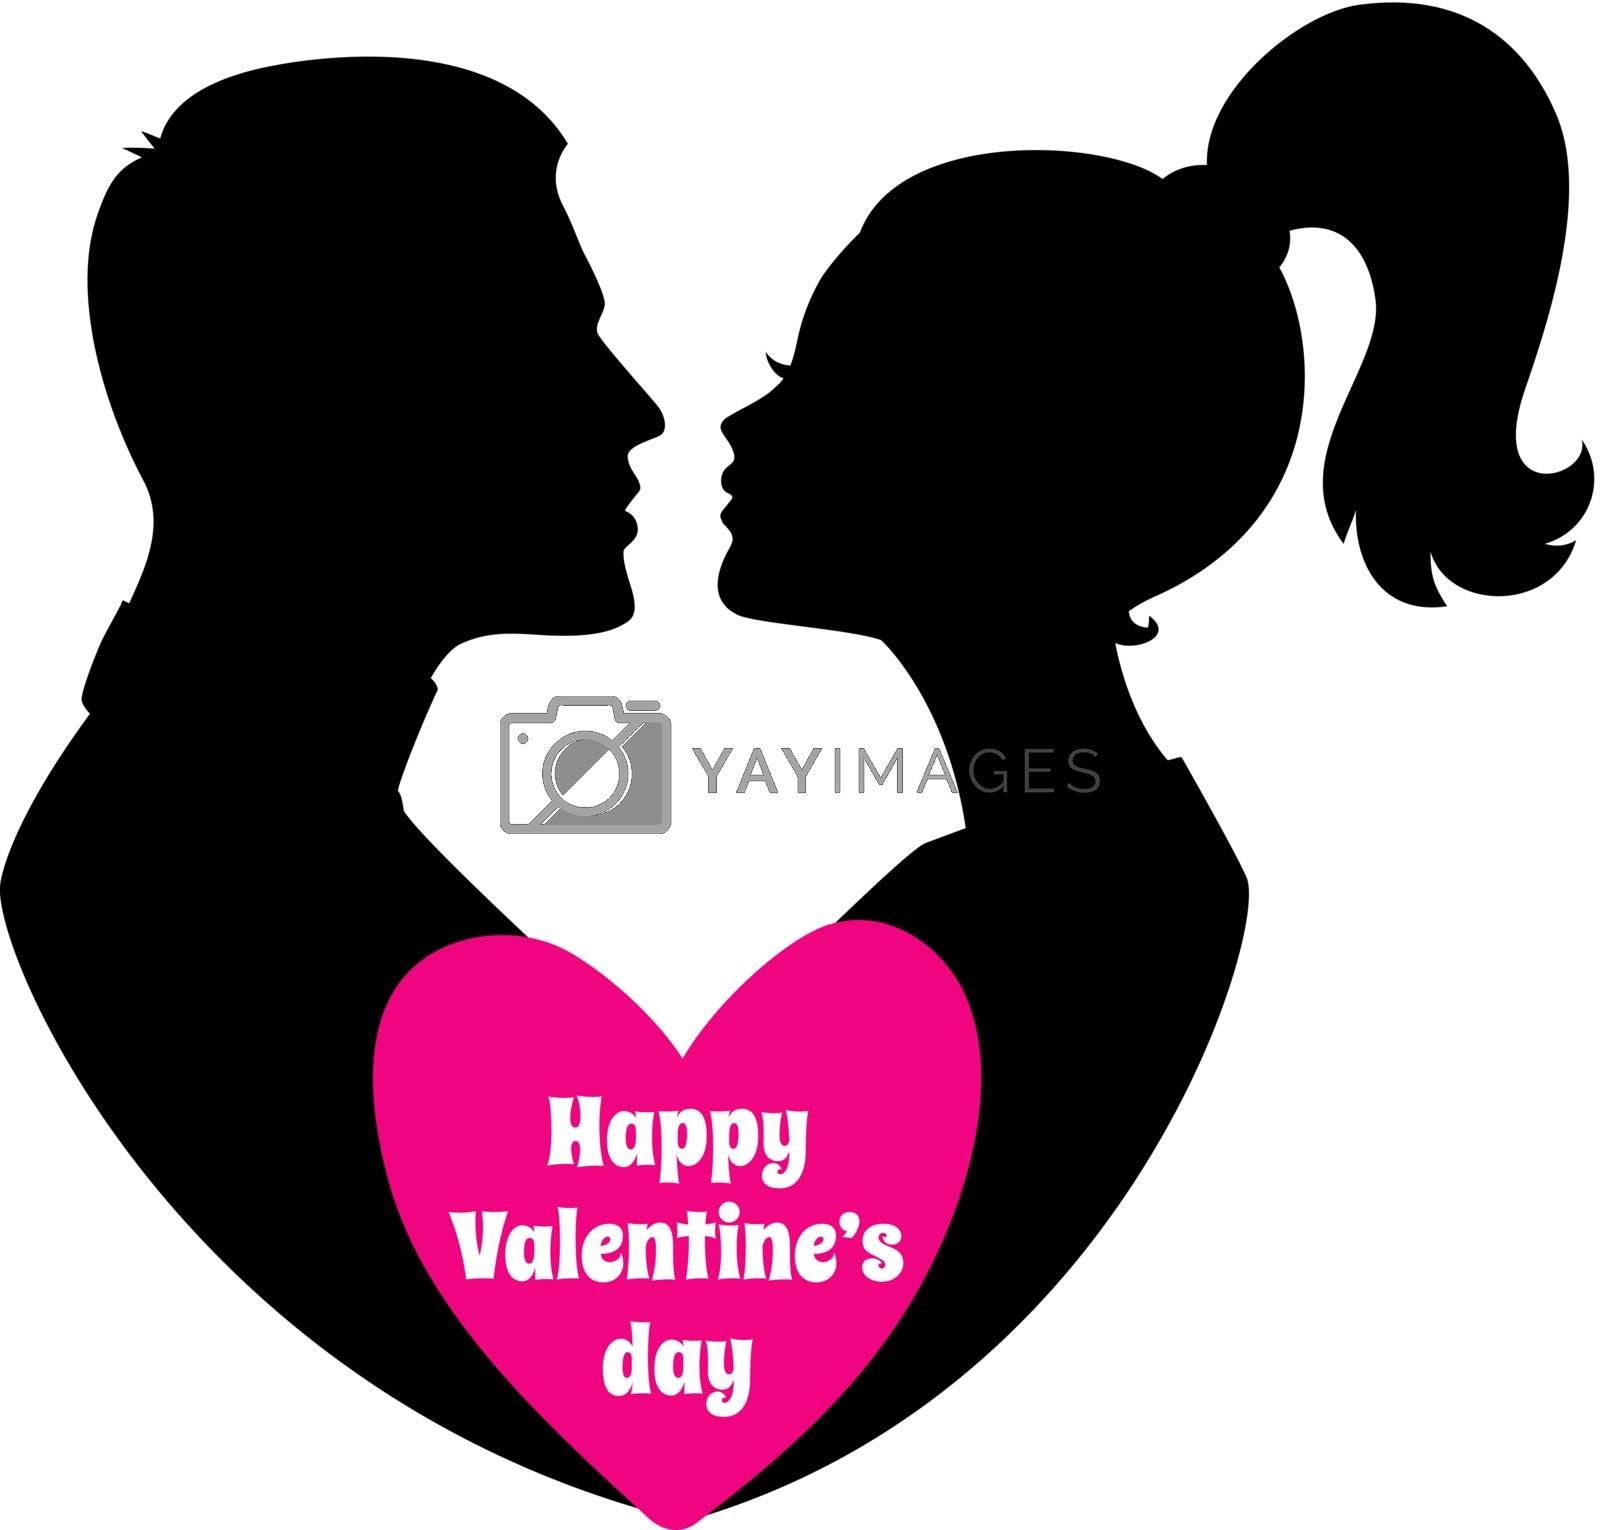 Vector illustration of Happy Valentine's day, couple silhouette image